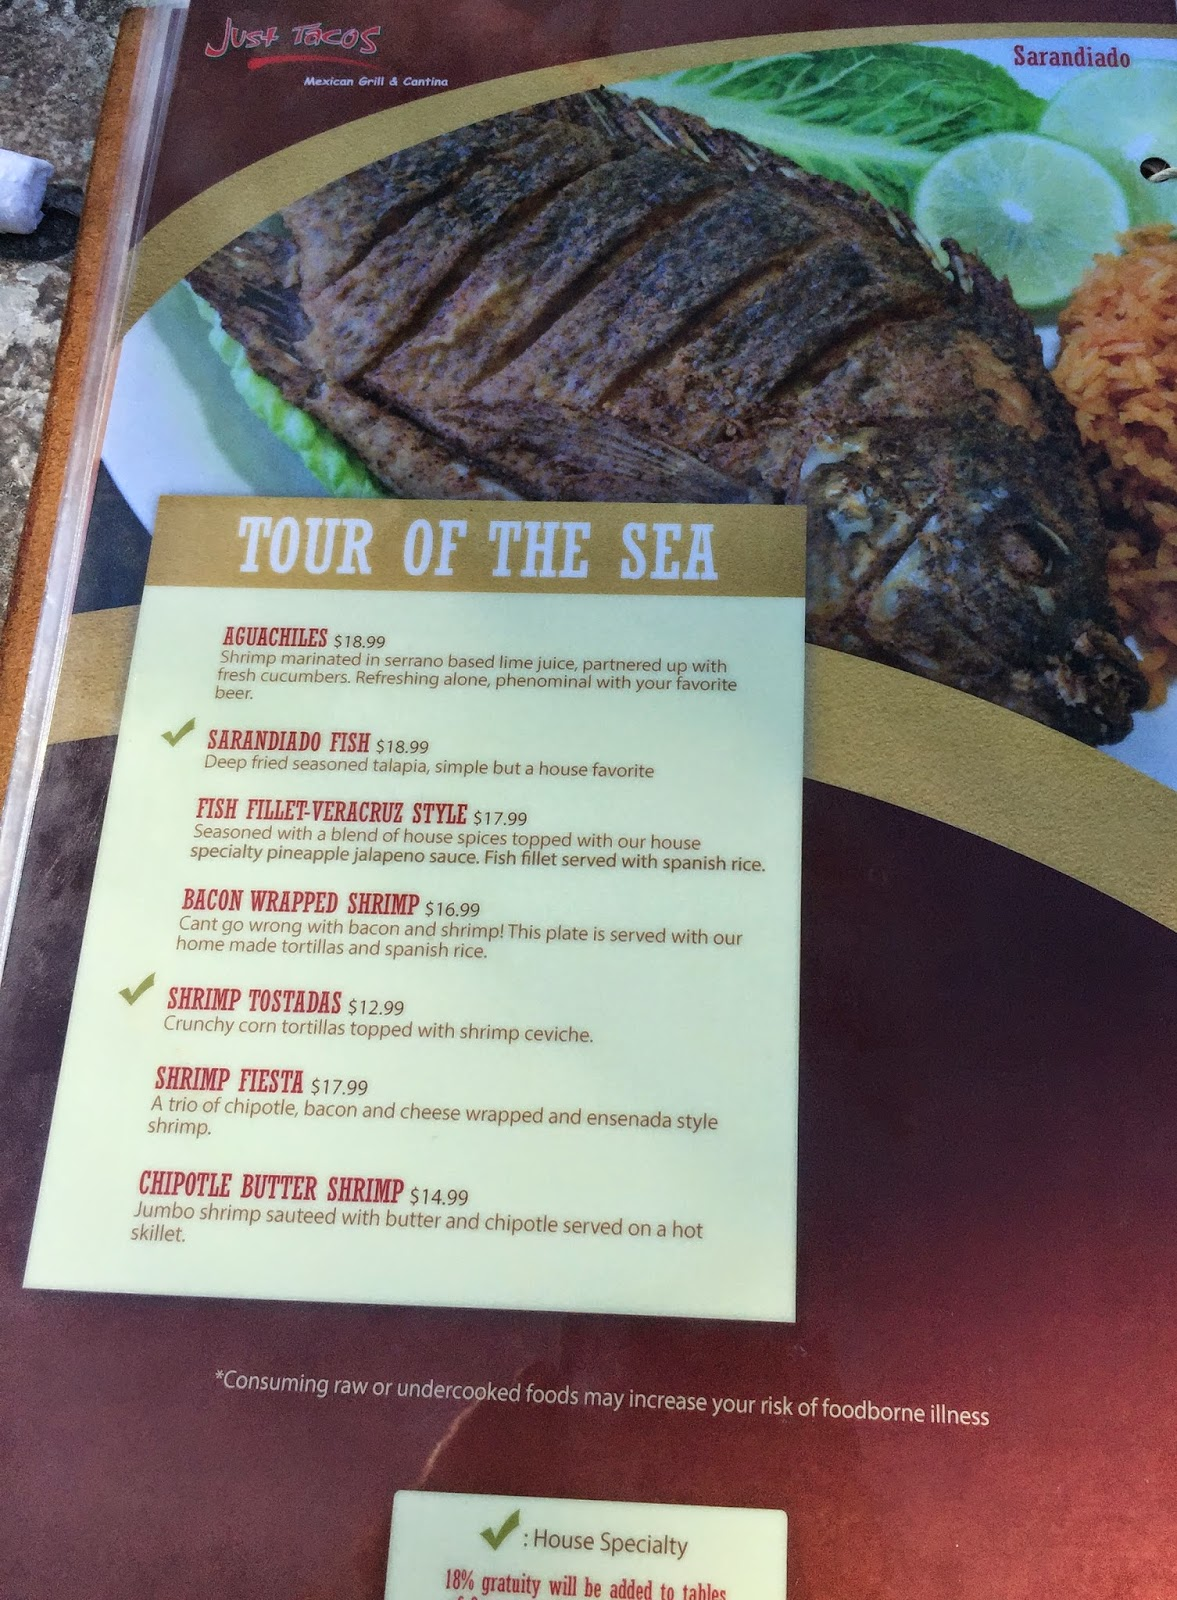 TASTE OF HAWAII: JUST TACOS MEXICAN GRILL AND CANTINA